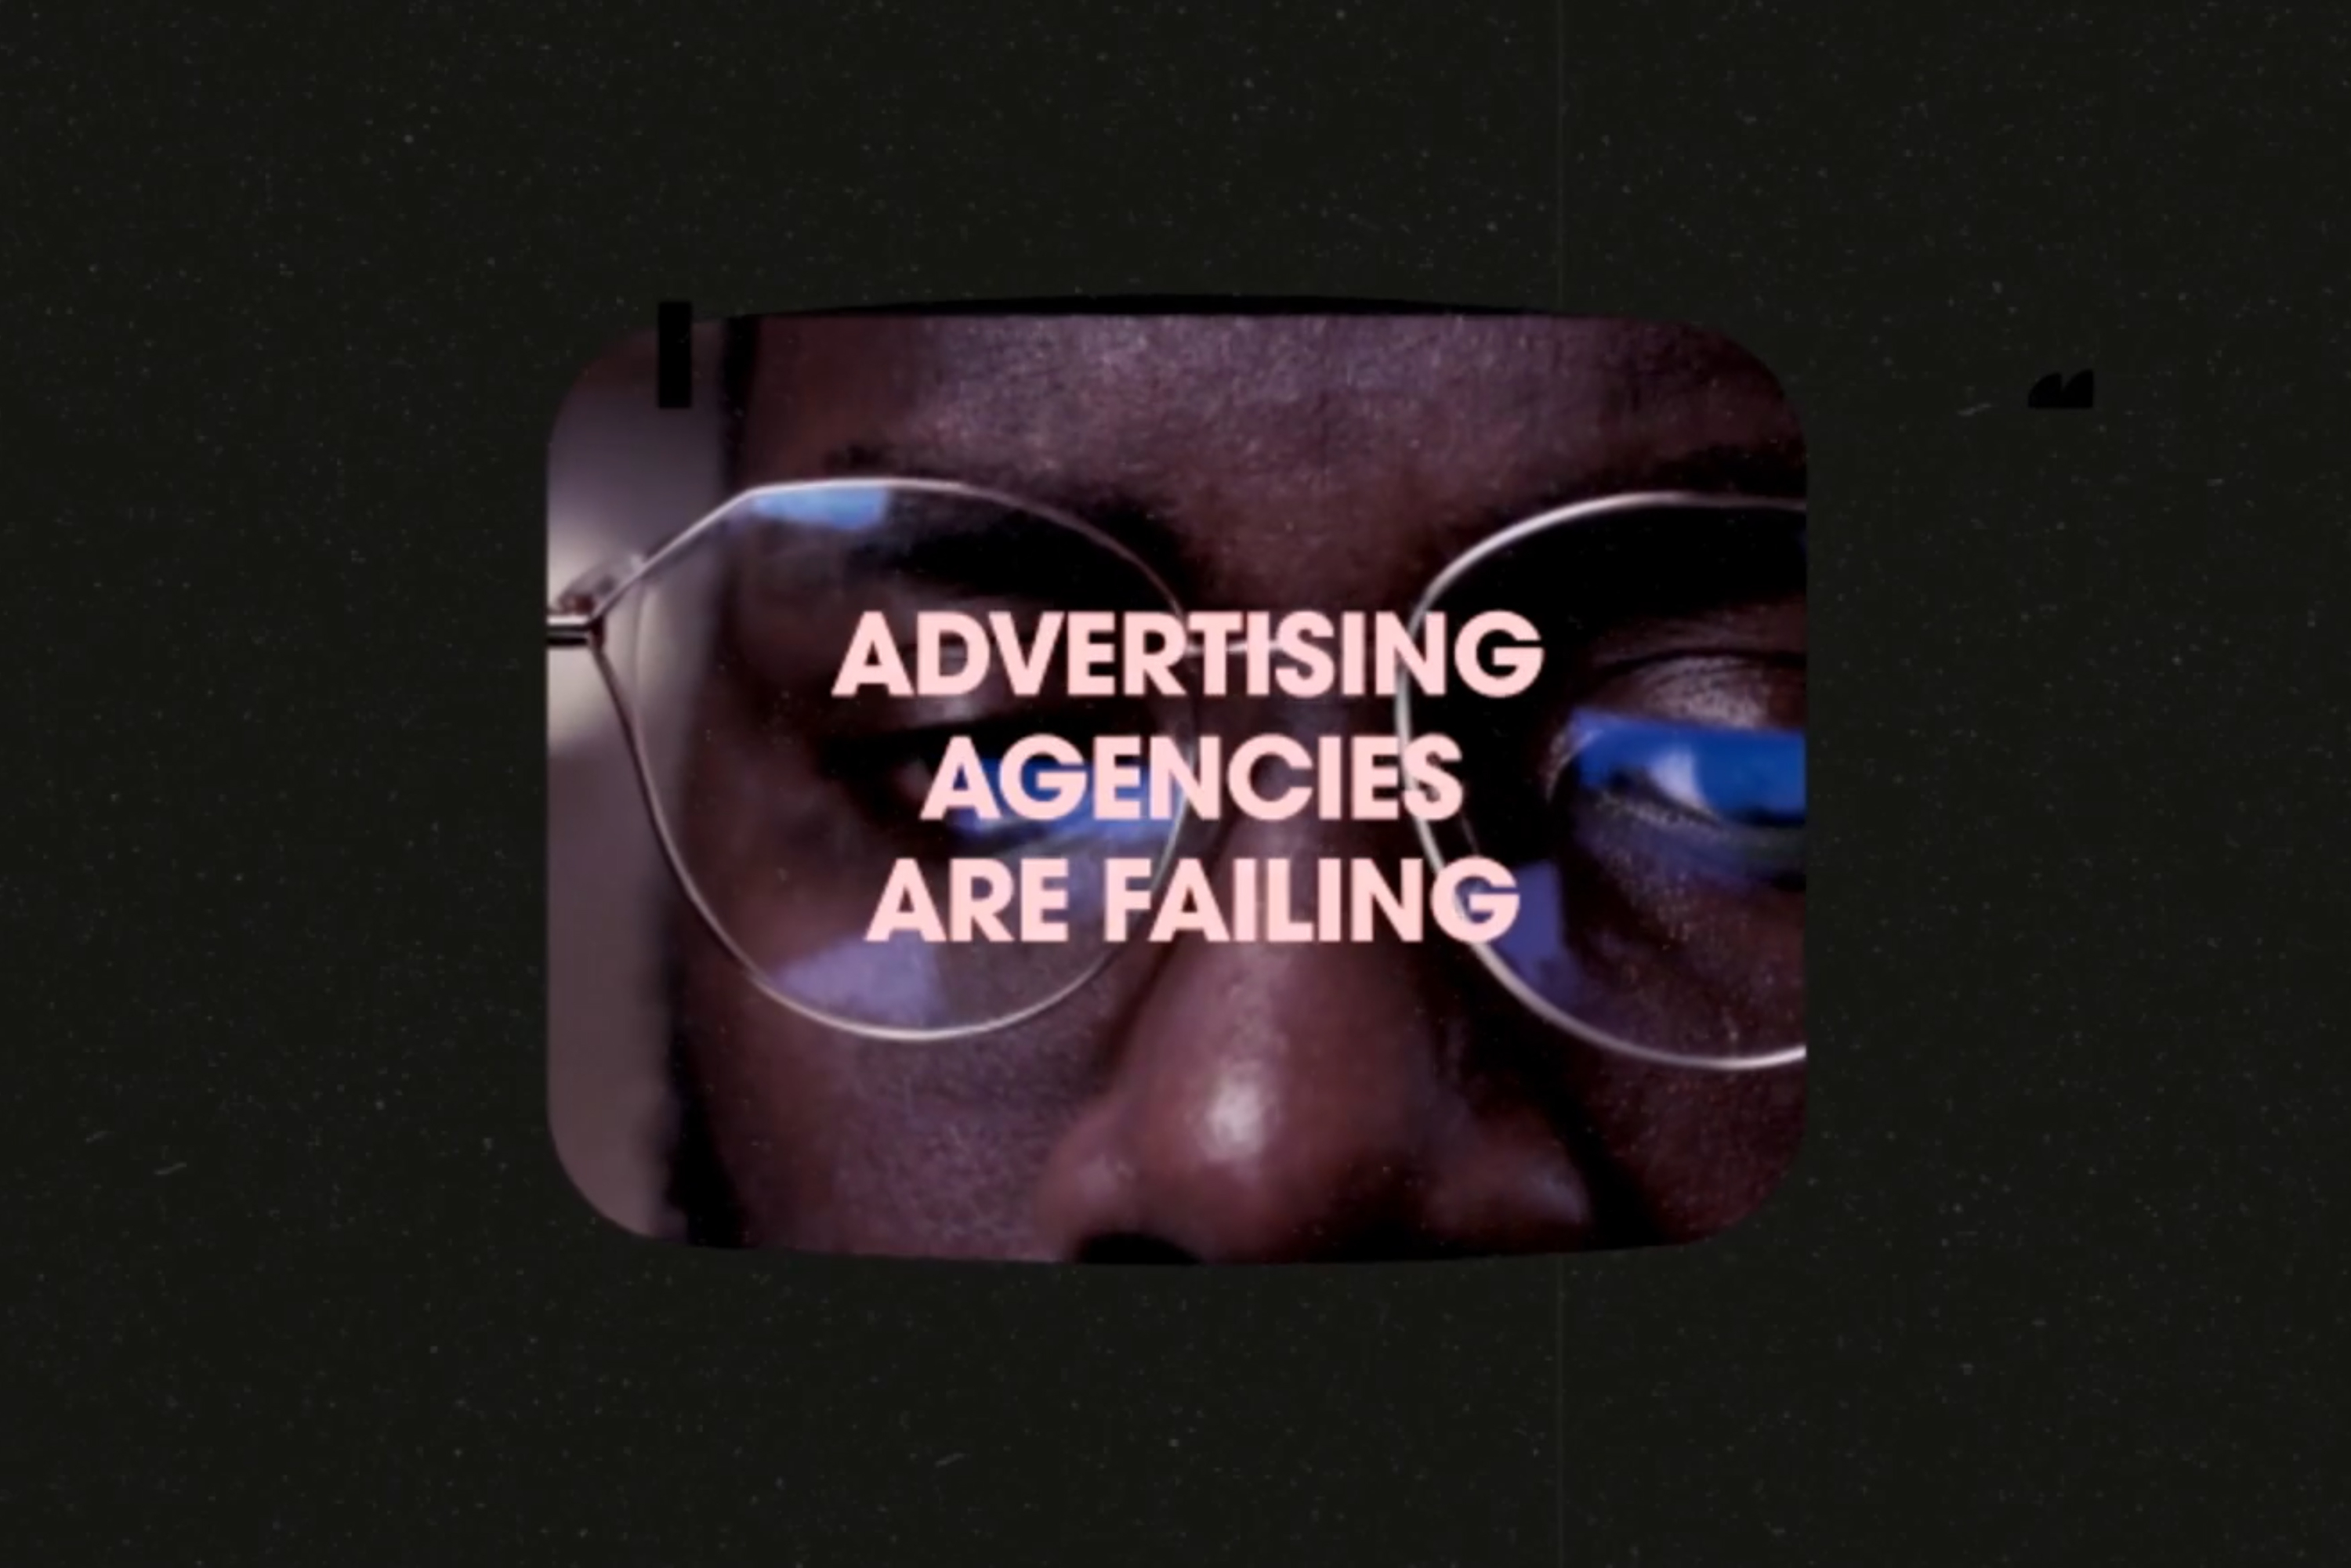 RAXO add culture ad+d culture marketing advertising creative agency ad diversity POC race gender